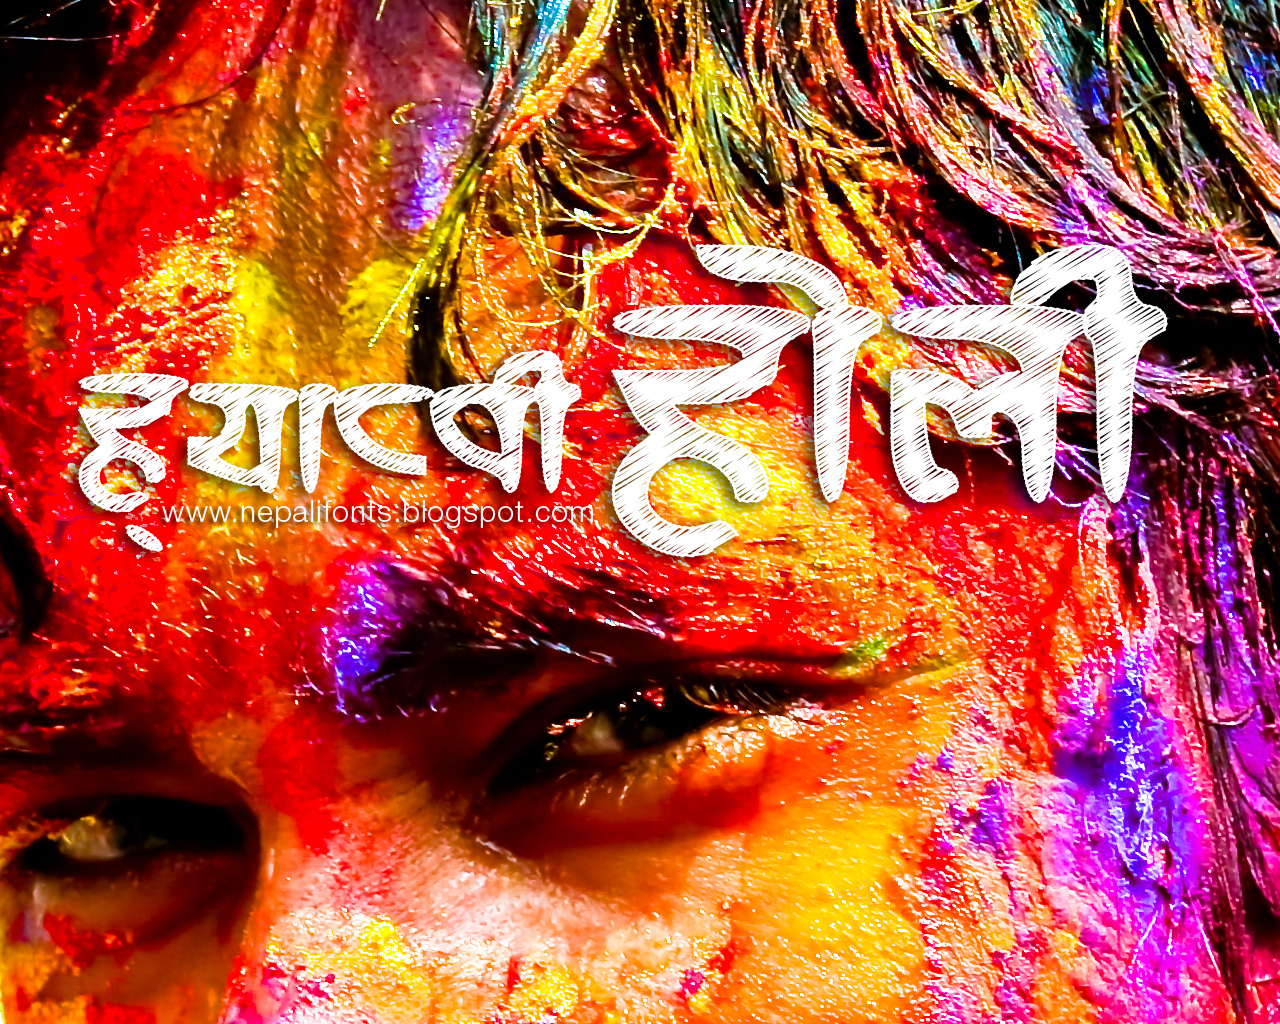 http://1.bp.blogspot.com/-rUuPeUJgah4/T1Osi9tRL2I/AAAAAAAACso/L-gm257sP2o/s1600/happy+holi+wallpaper3.jpg